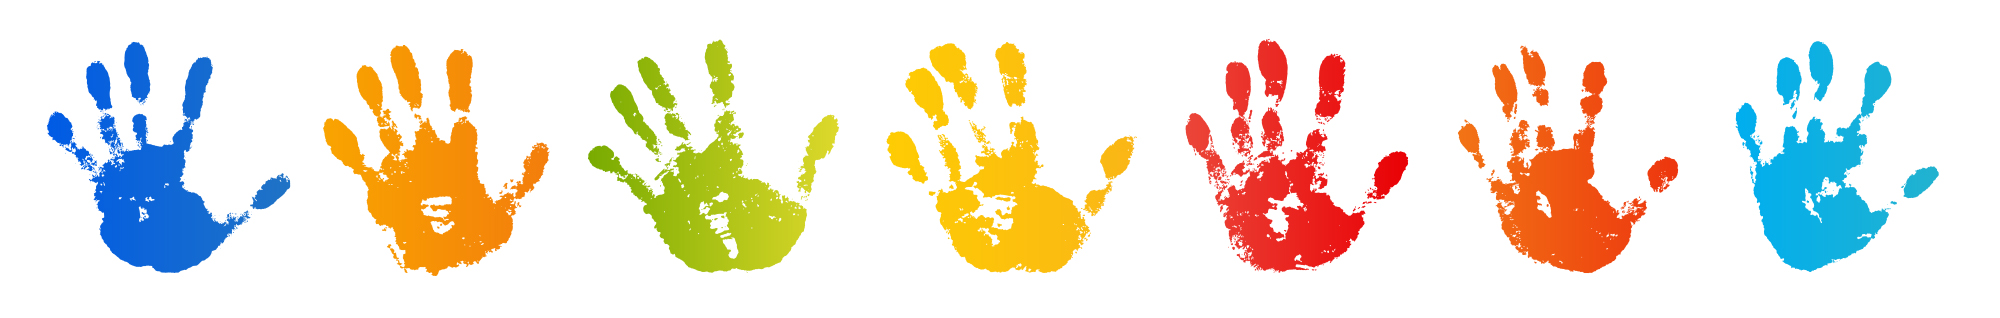 colorful children's hand prints